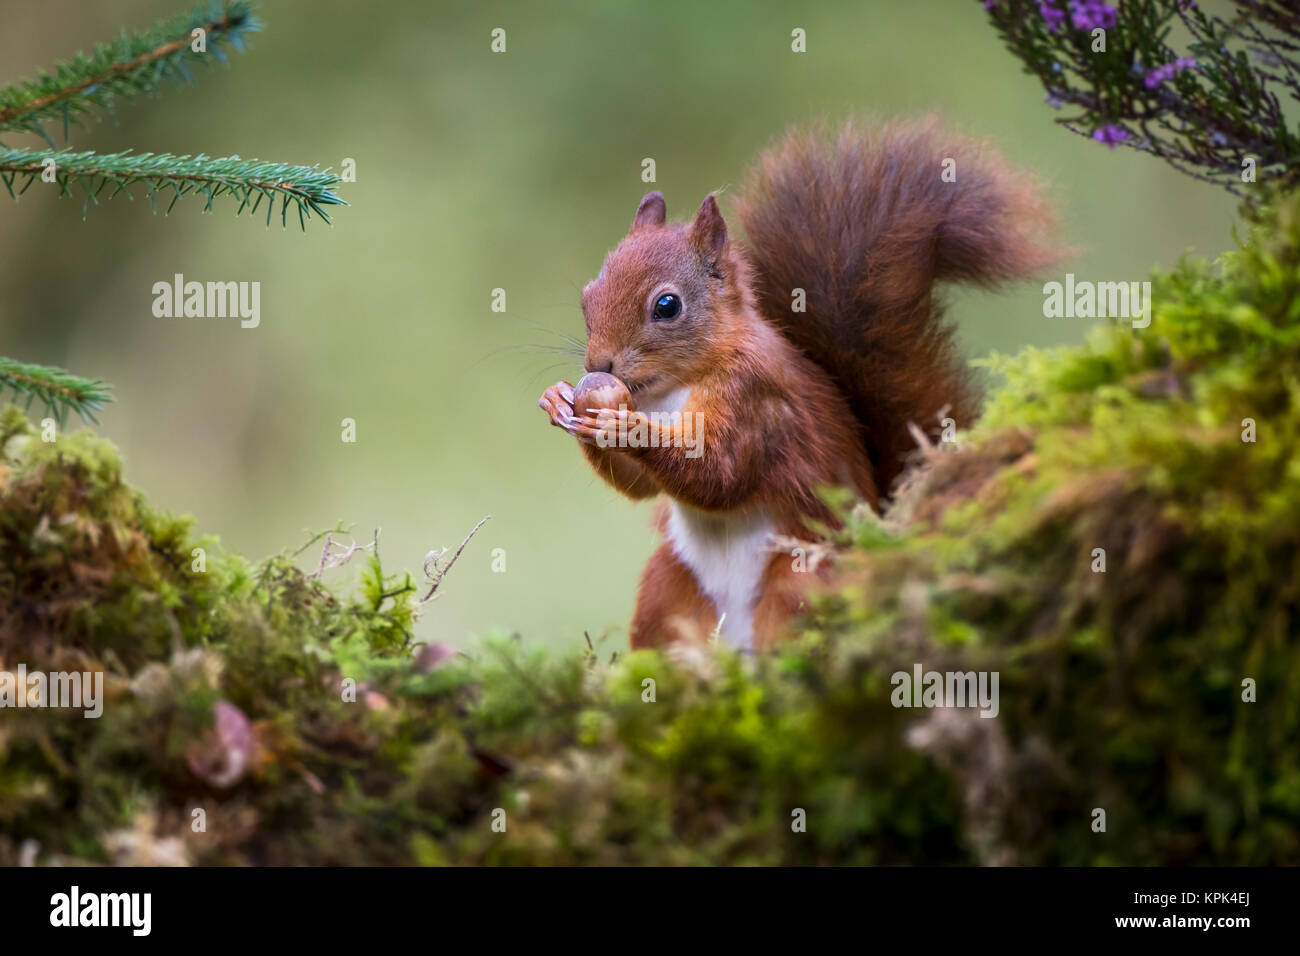 Red Squirrel (Sciurus vulgaris) eating a nut from it's hands while standing on a moss covered rock; Dumfries - Stock Image